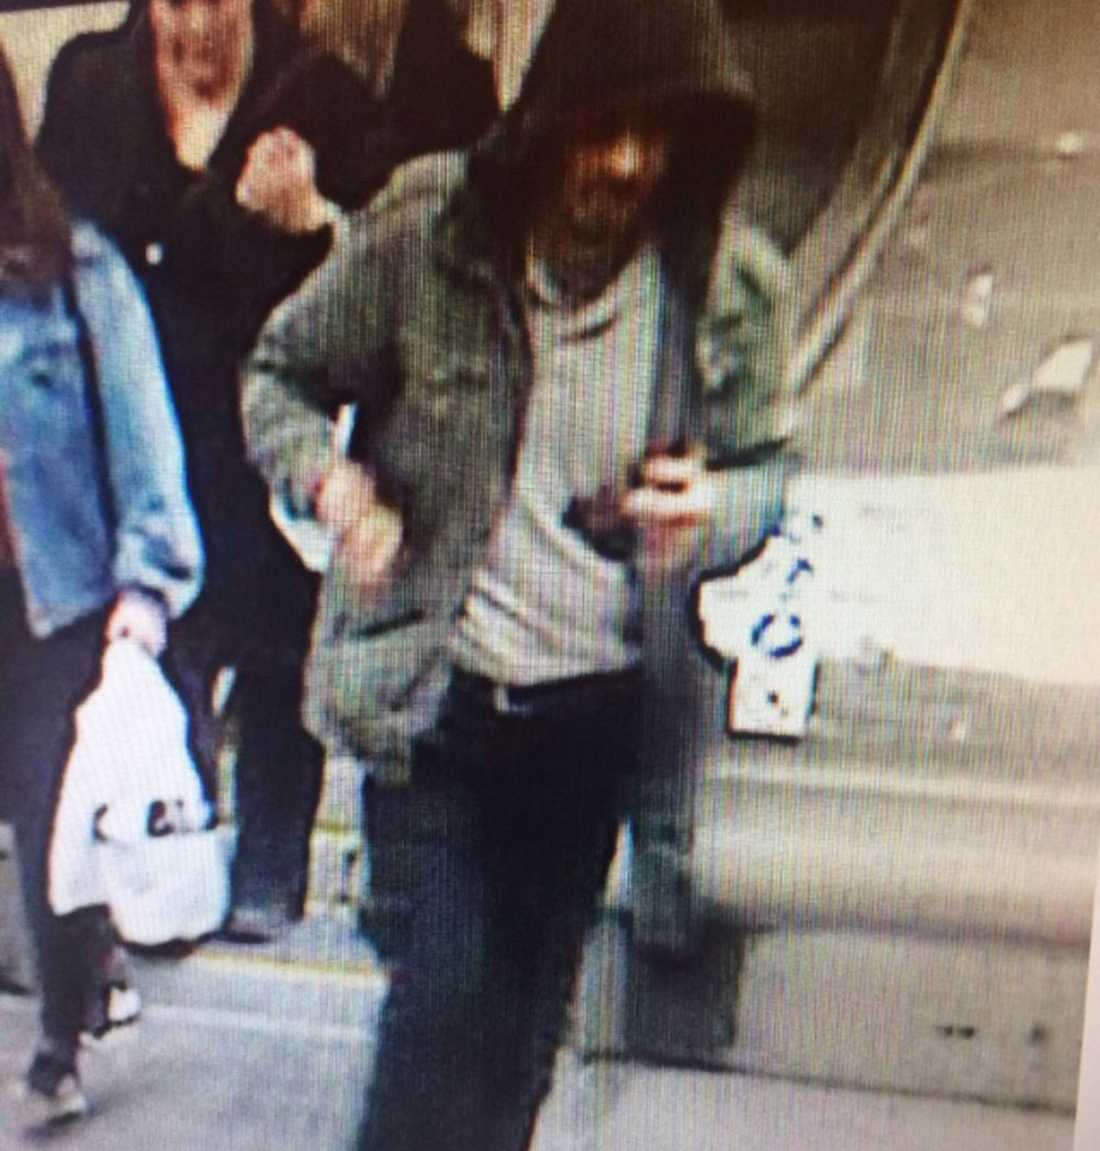 This photo released by Swedish police shows a person that the investigators want for questioning.